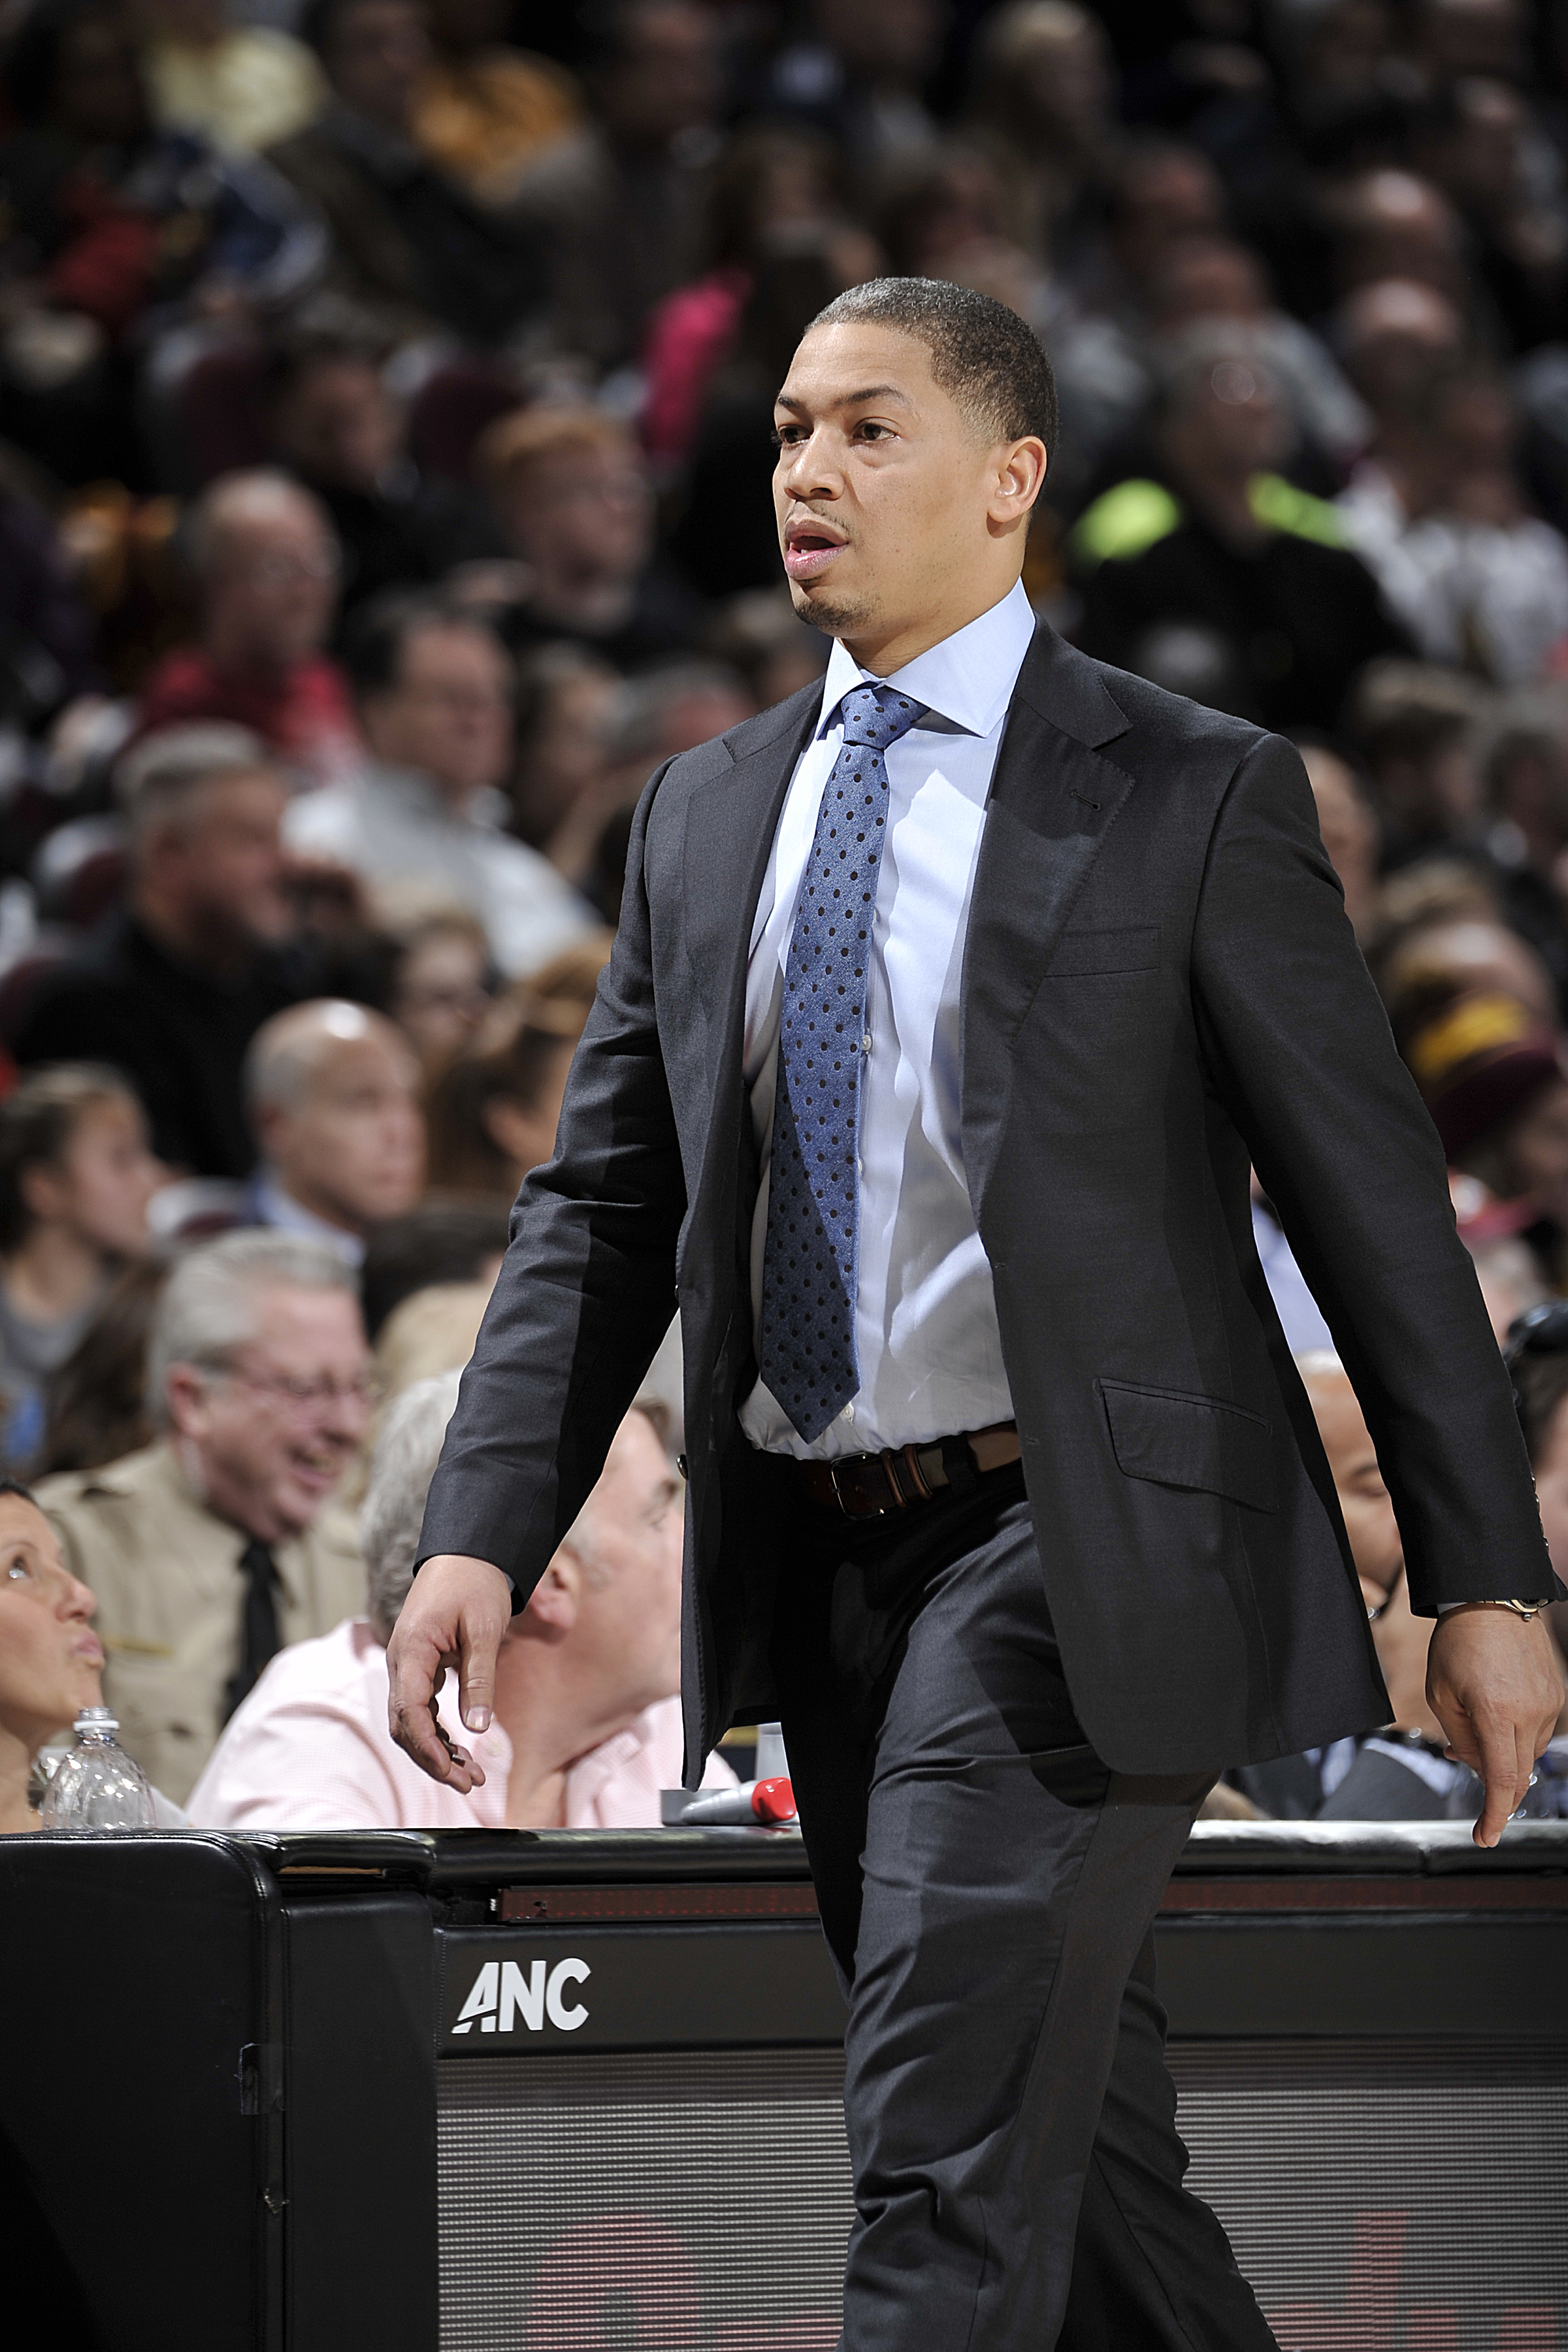 CLEVELAND, OH - JANUARY 27:  Head coach Tyronn Lue of the Cleveland Cavaliers looks on during the game against the Phoenix Suns on January 27, 2016 at Quicken Loans Arena in Cleveland, Ohio. (Photo by David Liam Kyle/NBAE via Getty Images)